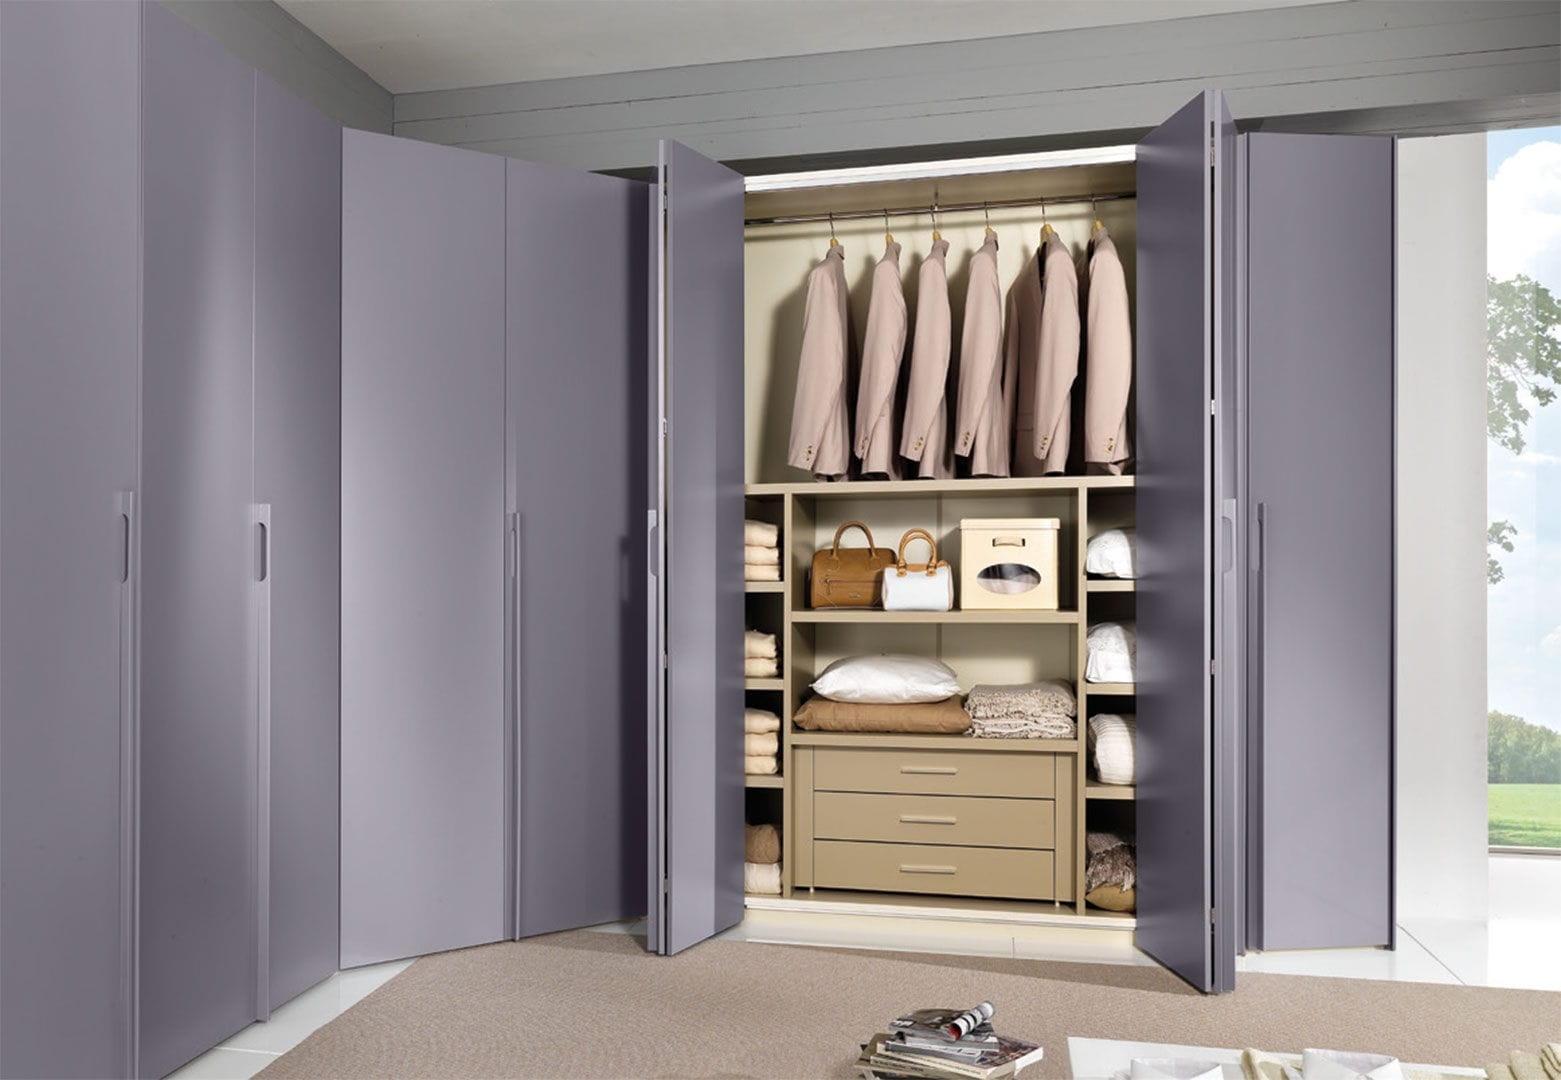 Corner Wardrobe Contemporary Lacquered Wood Folding Door Pertaining To Folding Door Wardrobes (View 23 of 25)